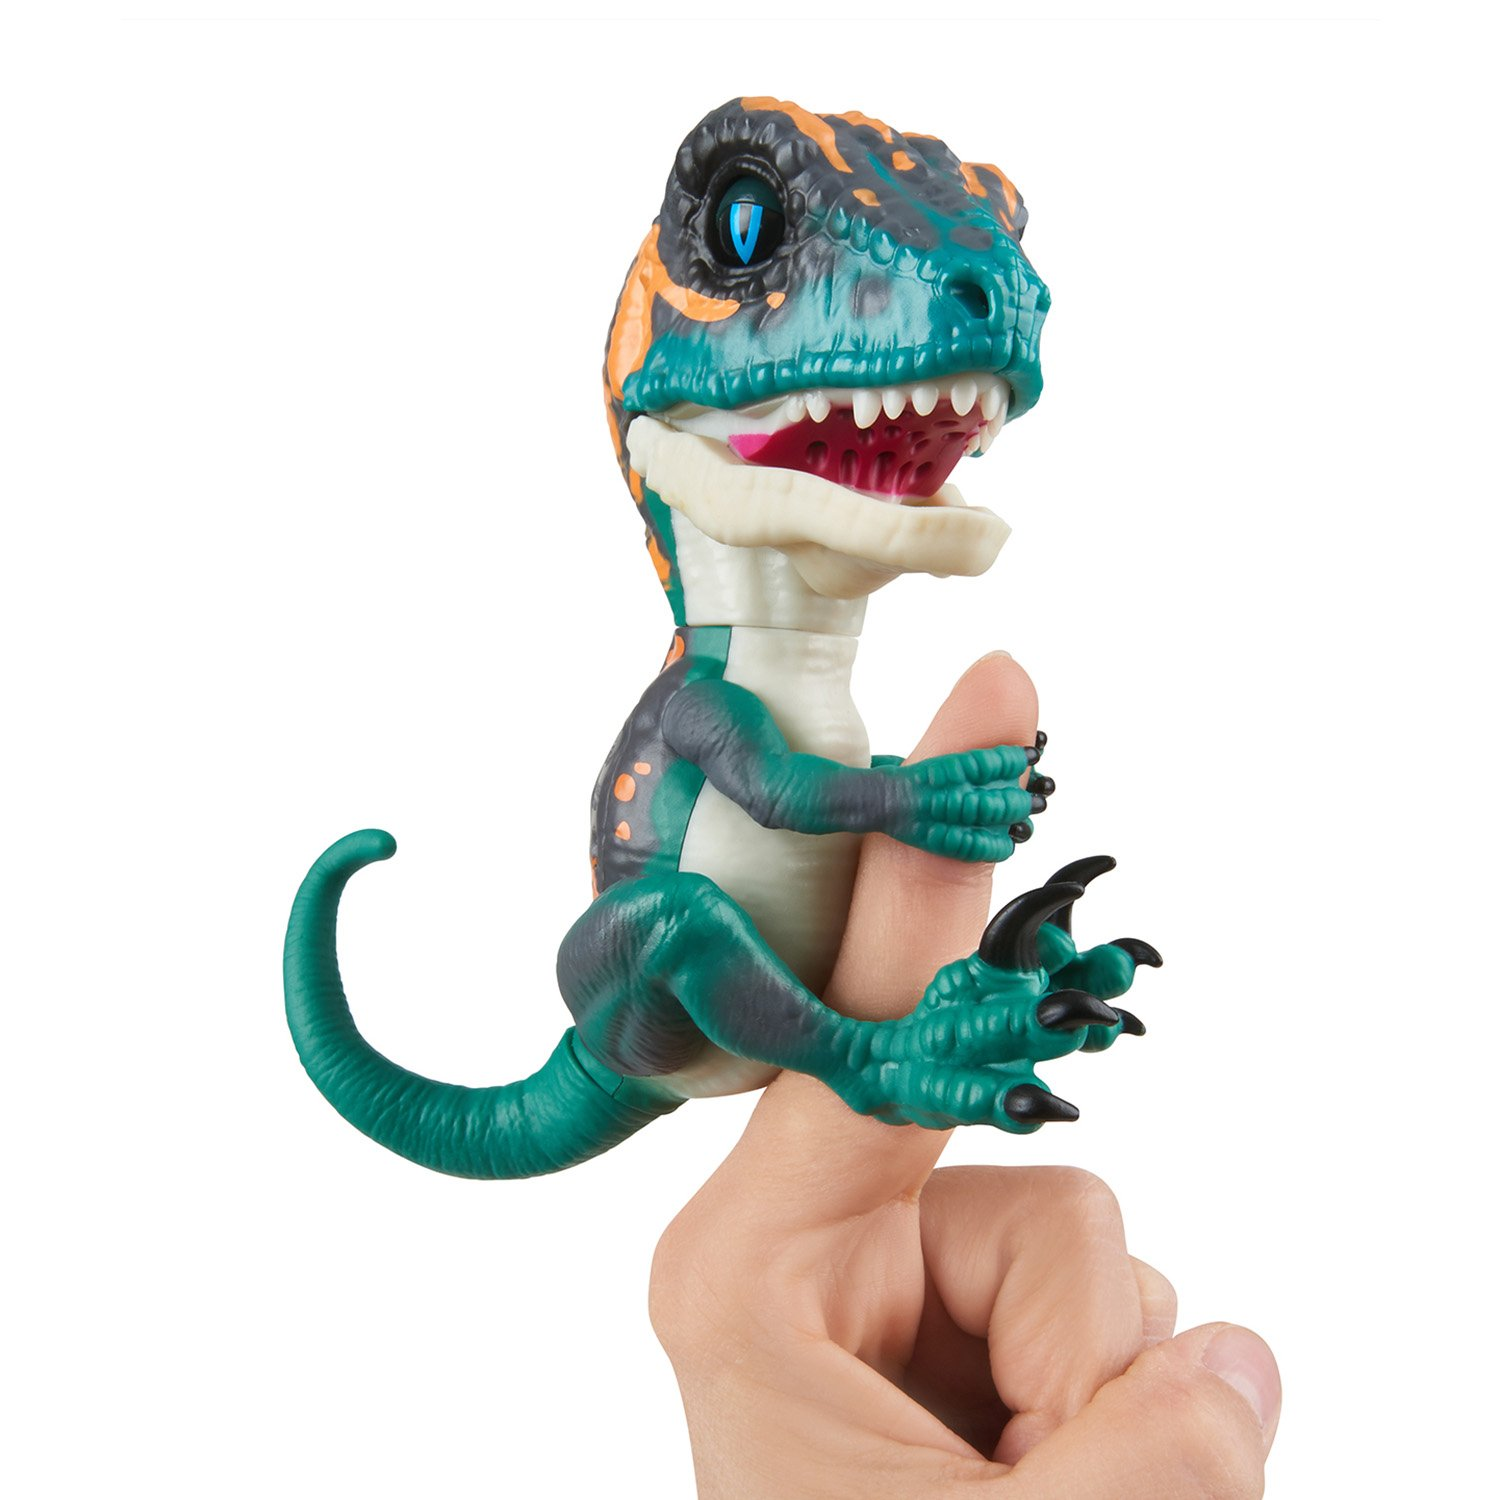 Buy Dinosaur Fingerlings Now!